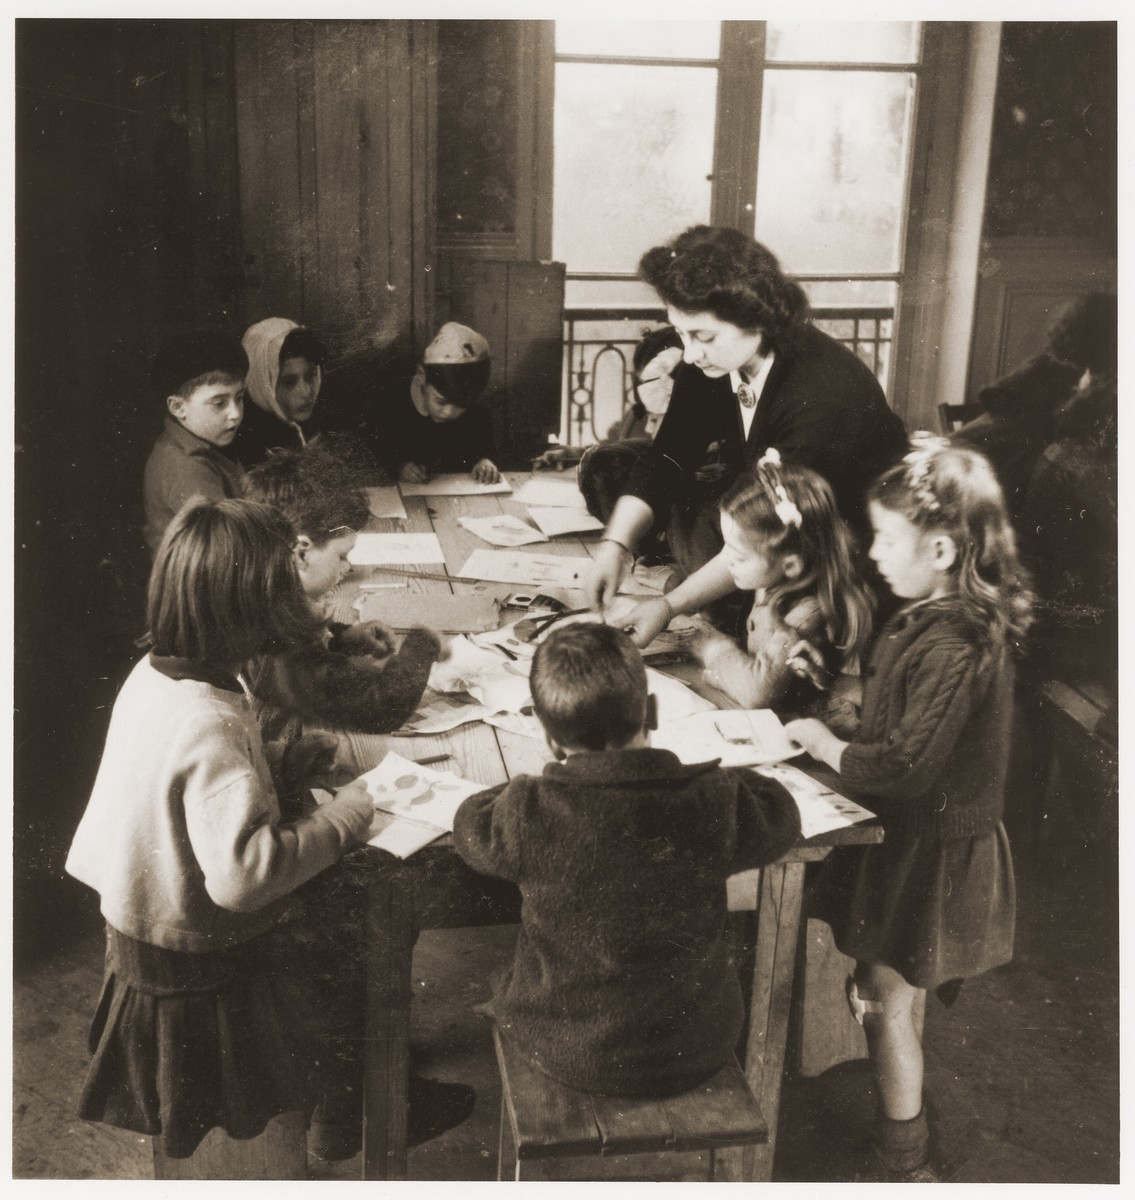 Children at the OSE children's home, Château de Vaucelles, in Taverny, sit around a table with their English teacher.    Among those pictured are Beate Zimmern (far right) and her sister, Felice (between Beate and the teacher).  Standing on the other side of the table is Leon Bretmel.